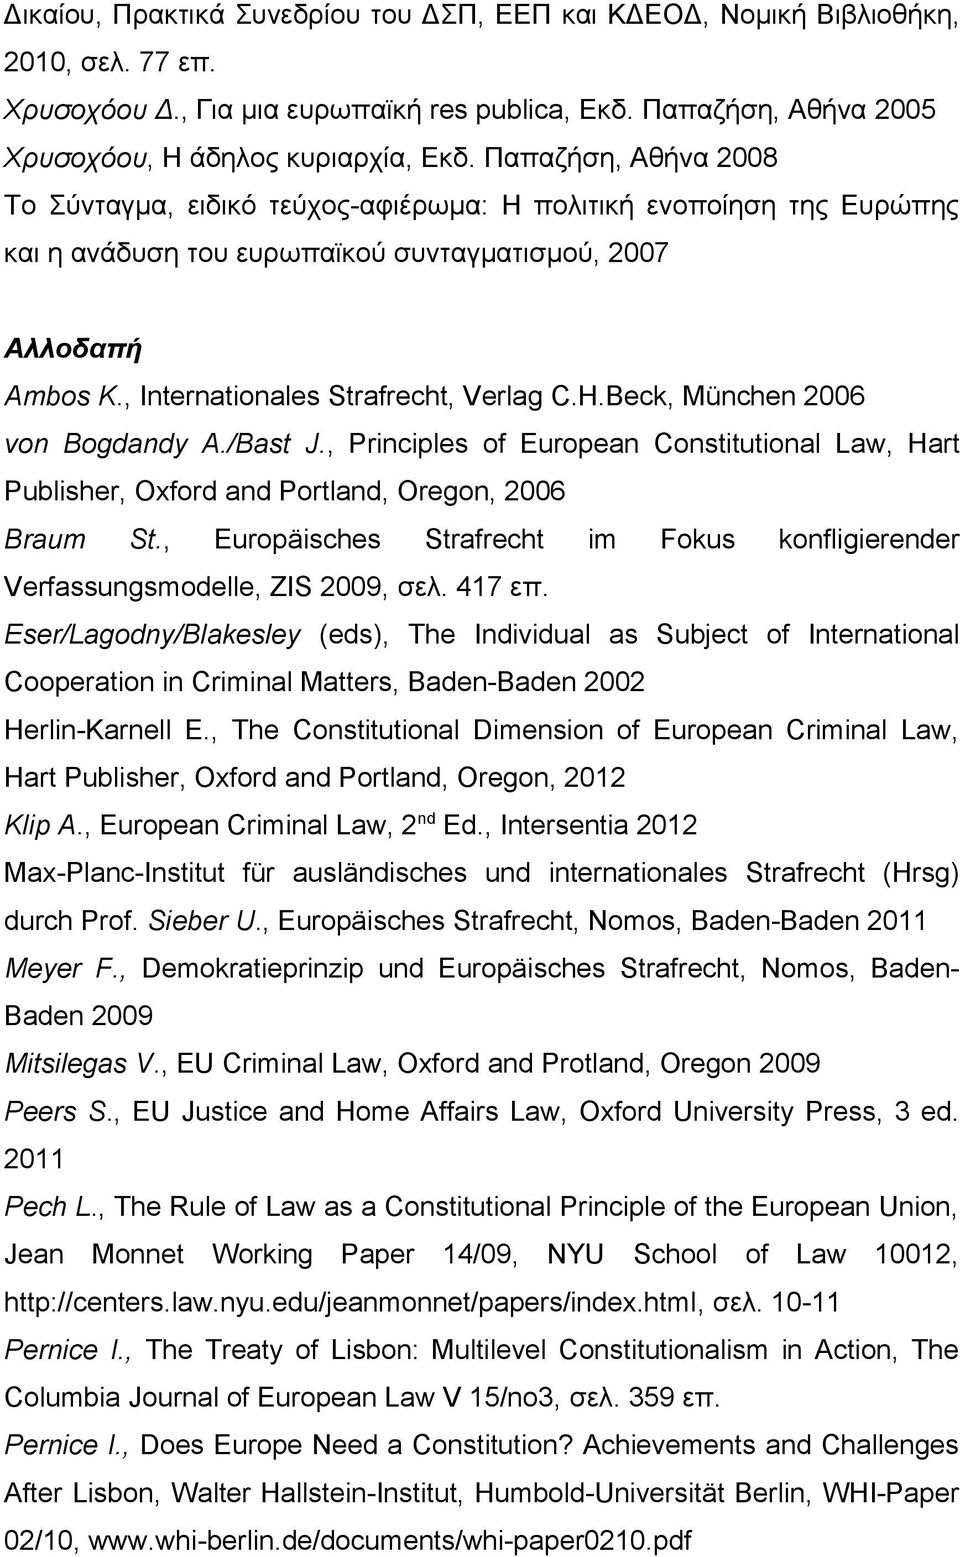 Beck, München 2006 von Bogdandy A./Bast J., Principles of European Constitutional Law, Hart Publisher, Oxford and Portland, Oregon, 2006 Braum St.